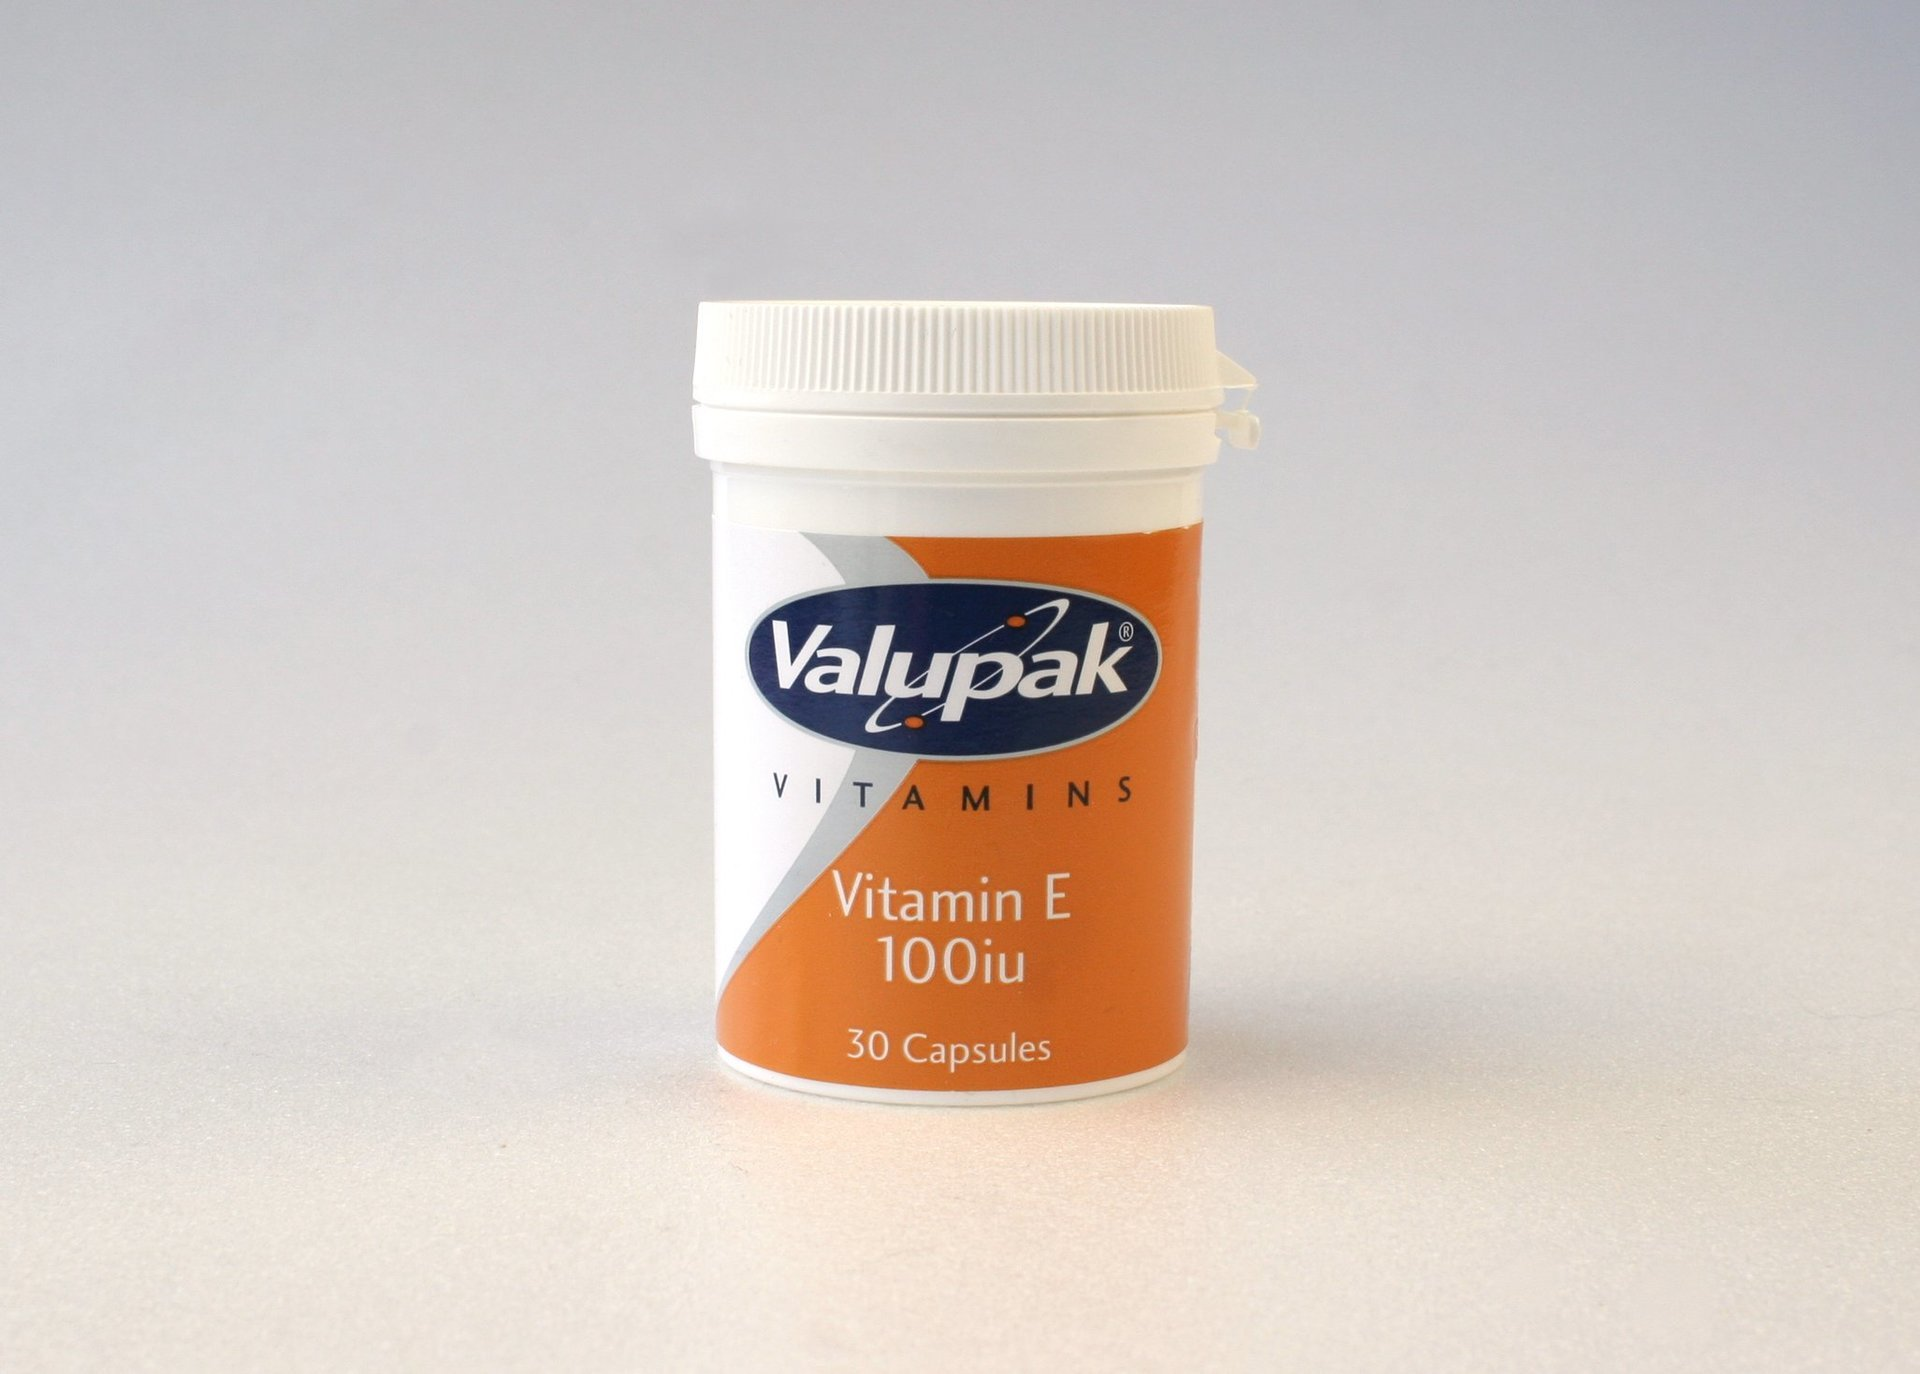 Valupak Vitamin E 100iU 30 Capsules